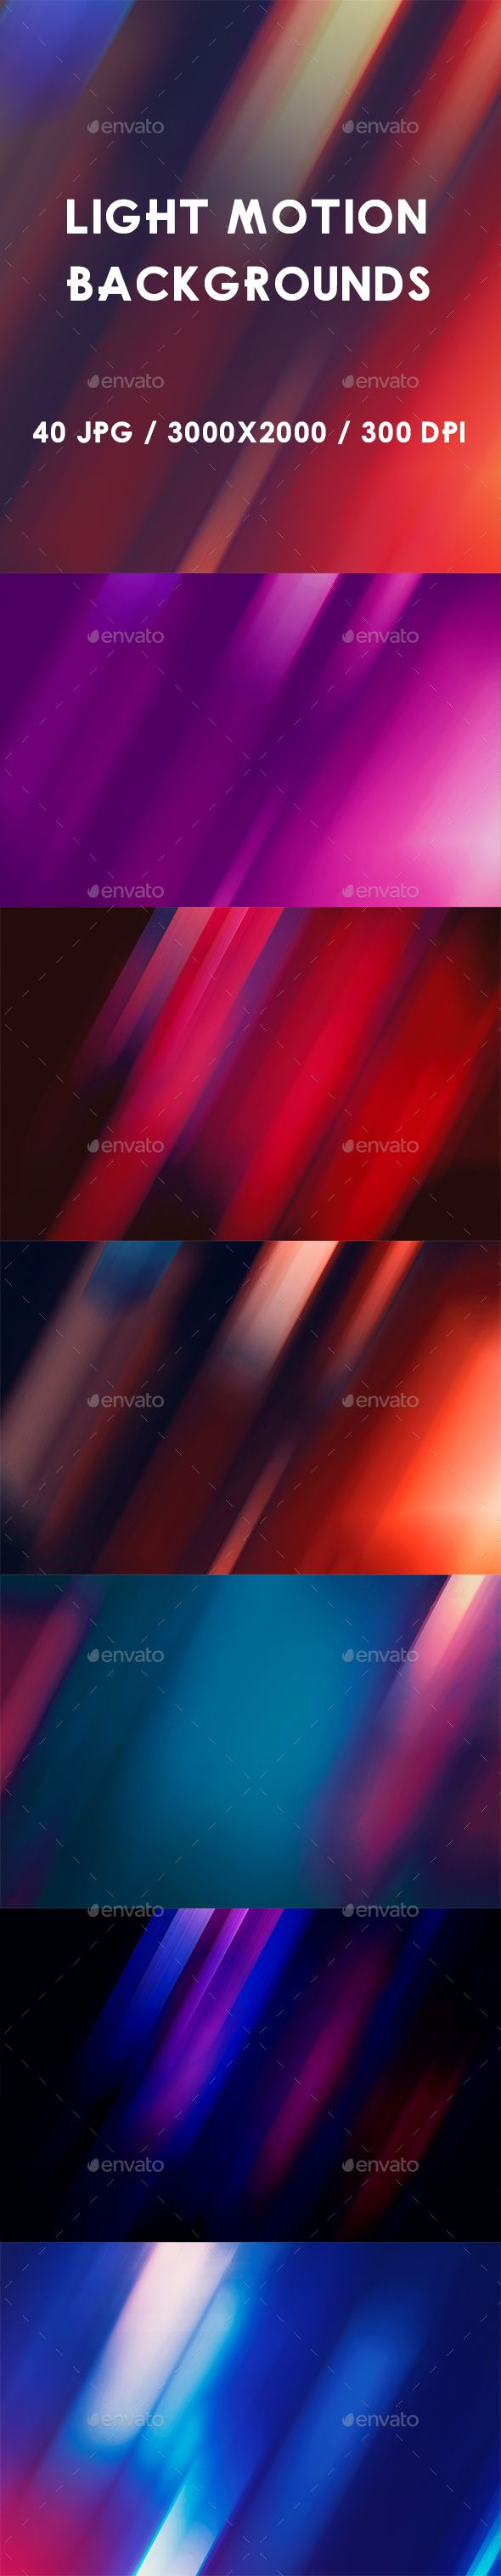 40 Light Motion Backgrounds - Abstract #Backgrounds Download here: https://graphicriver.net/item/40-light-motion-backgrounds/19455954?ref=alena994